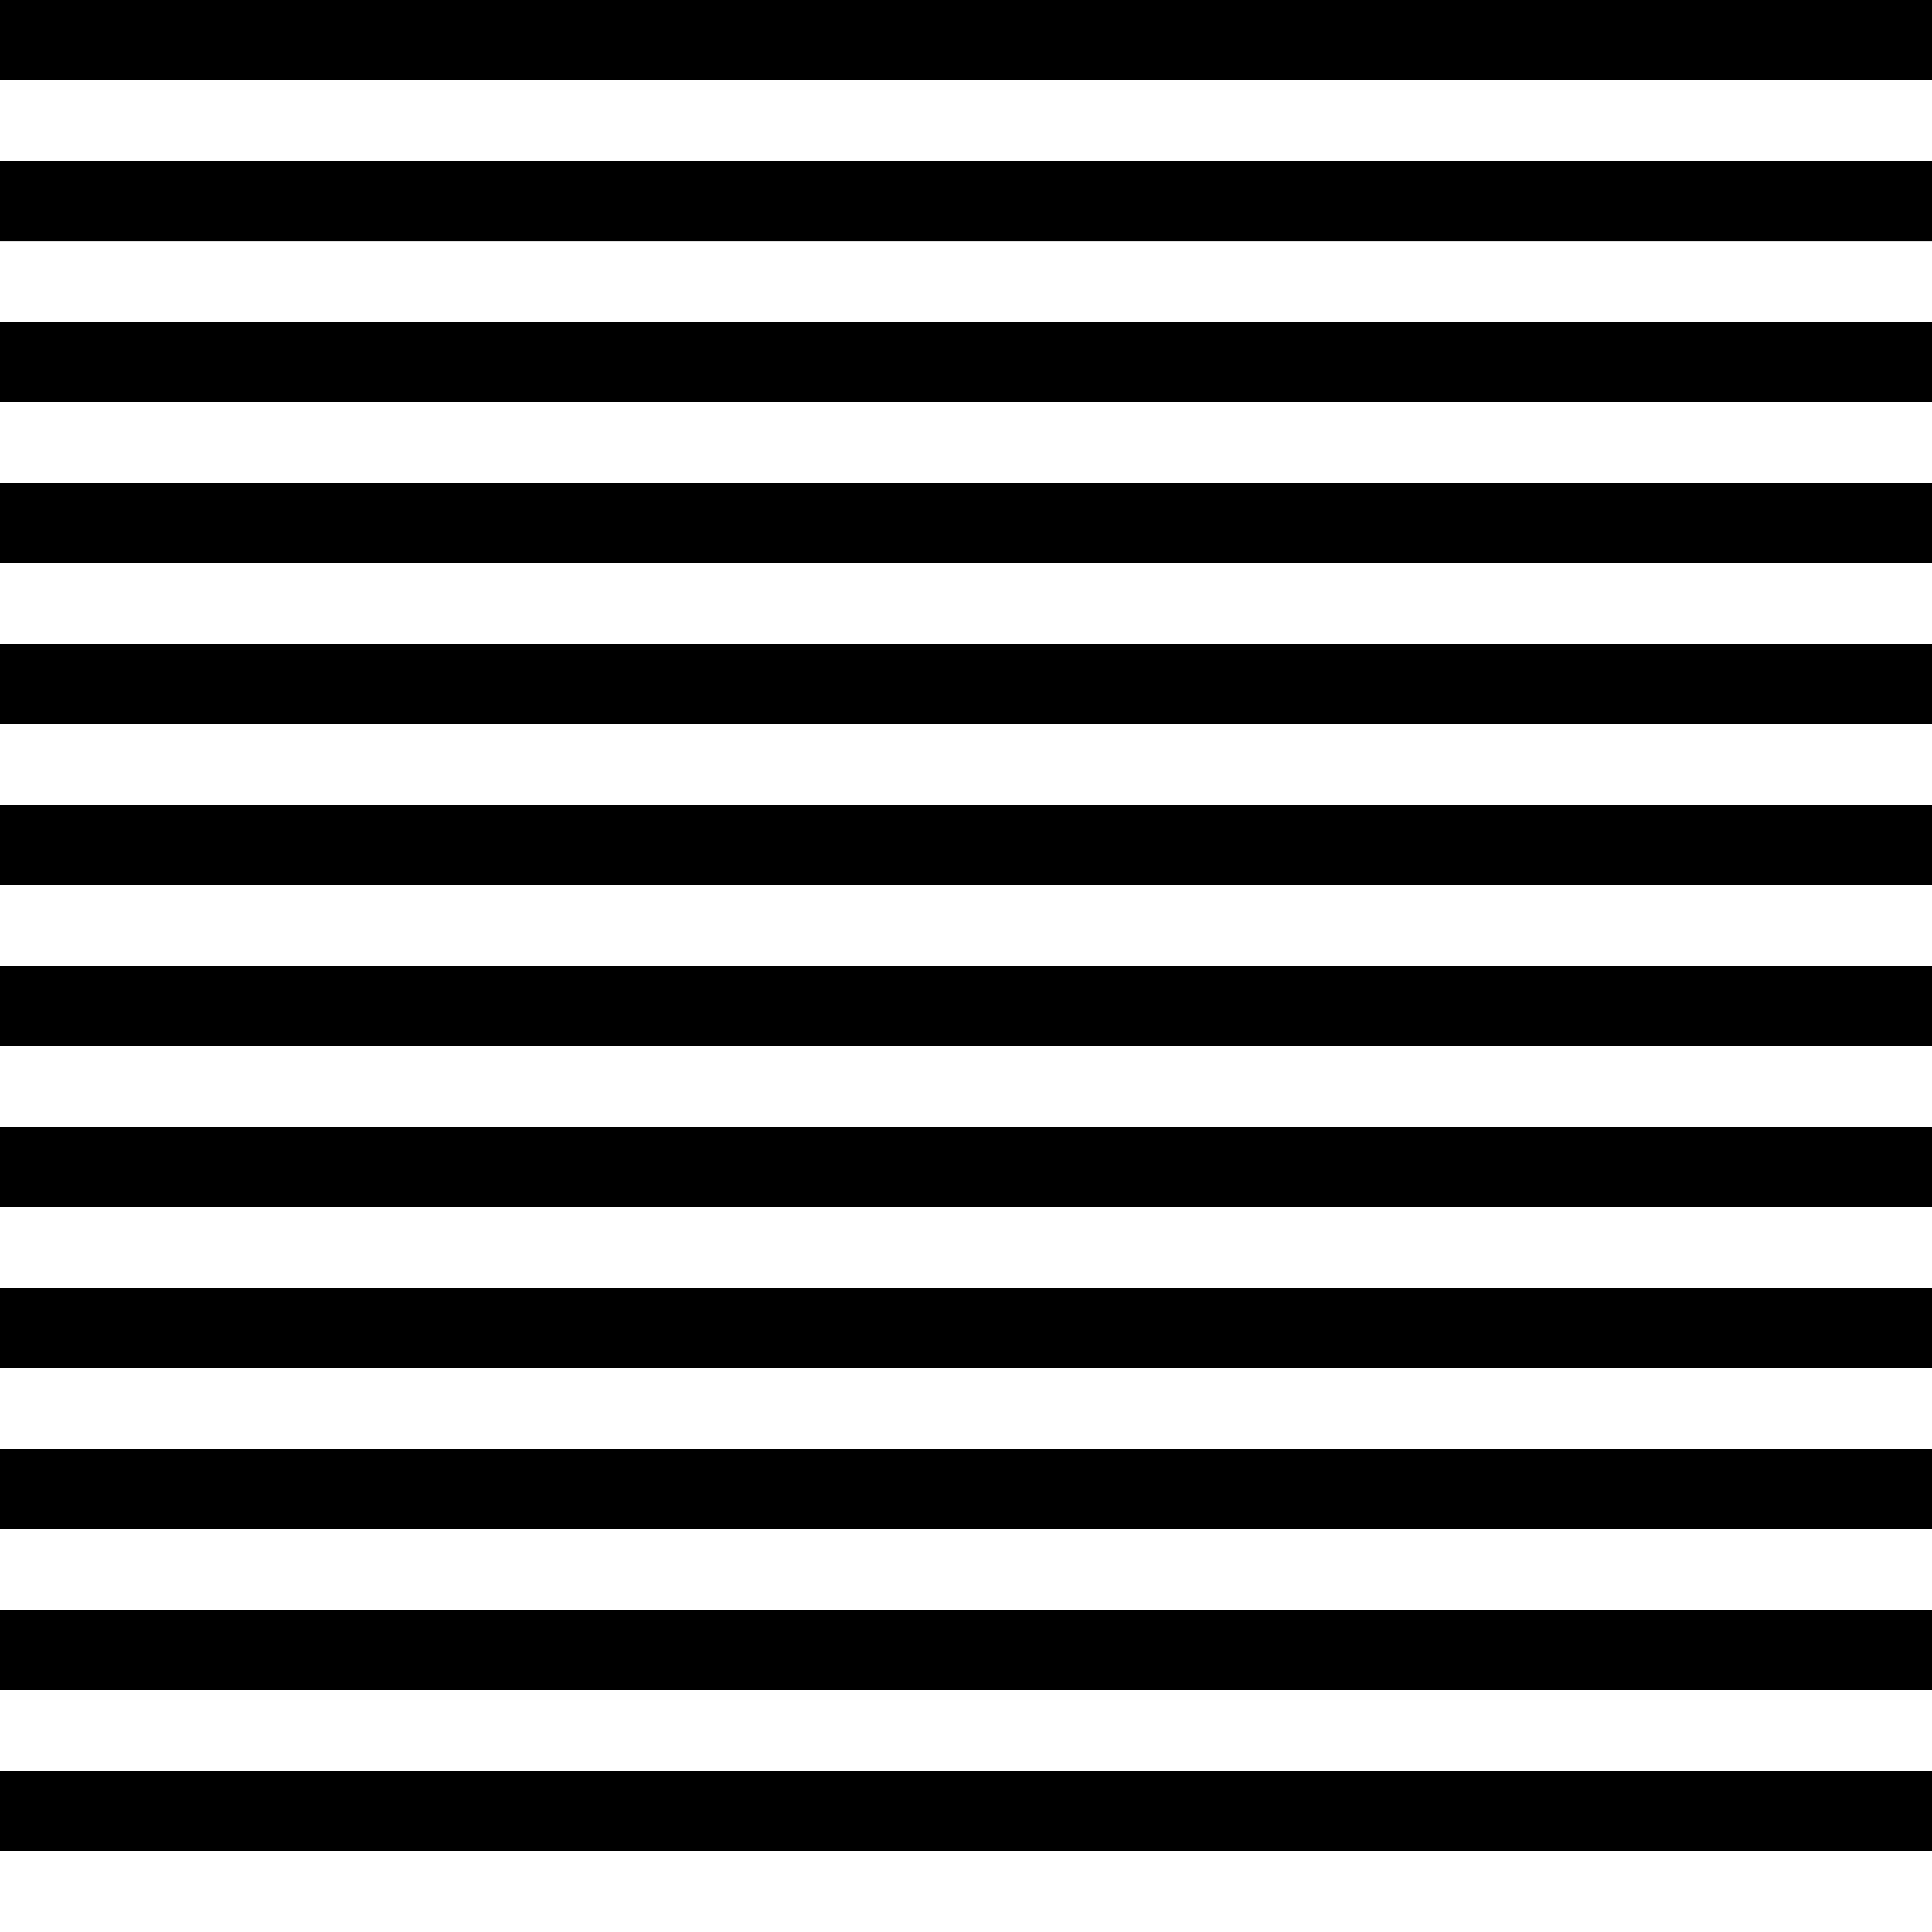 Free Horizontal Line Cliparts, Download Free Clip Art, Free.